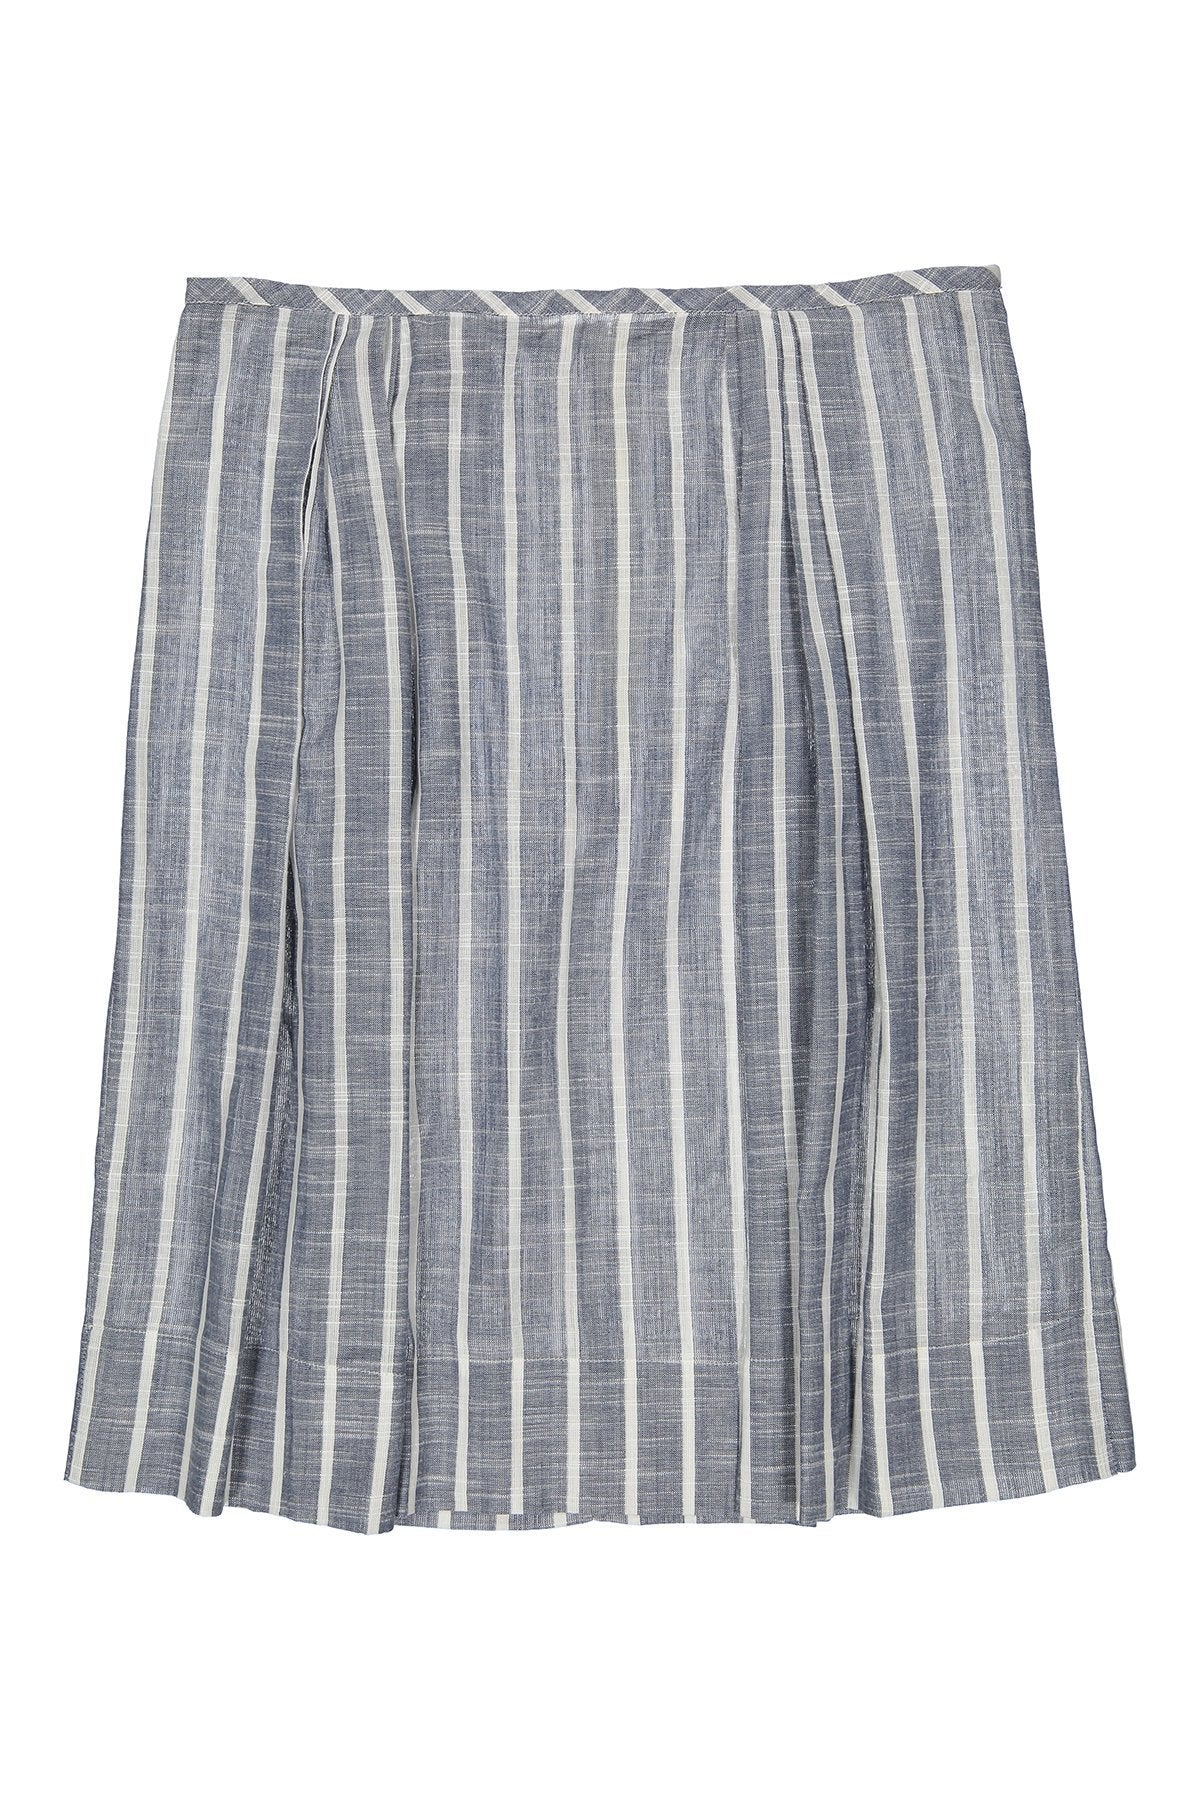 PINTO - Striped Chambray Cotton - PROJECT 6, modest fashion